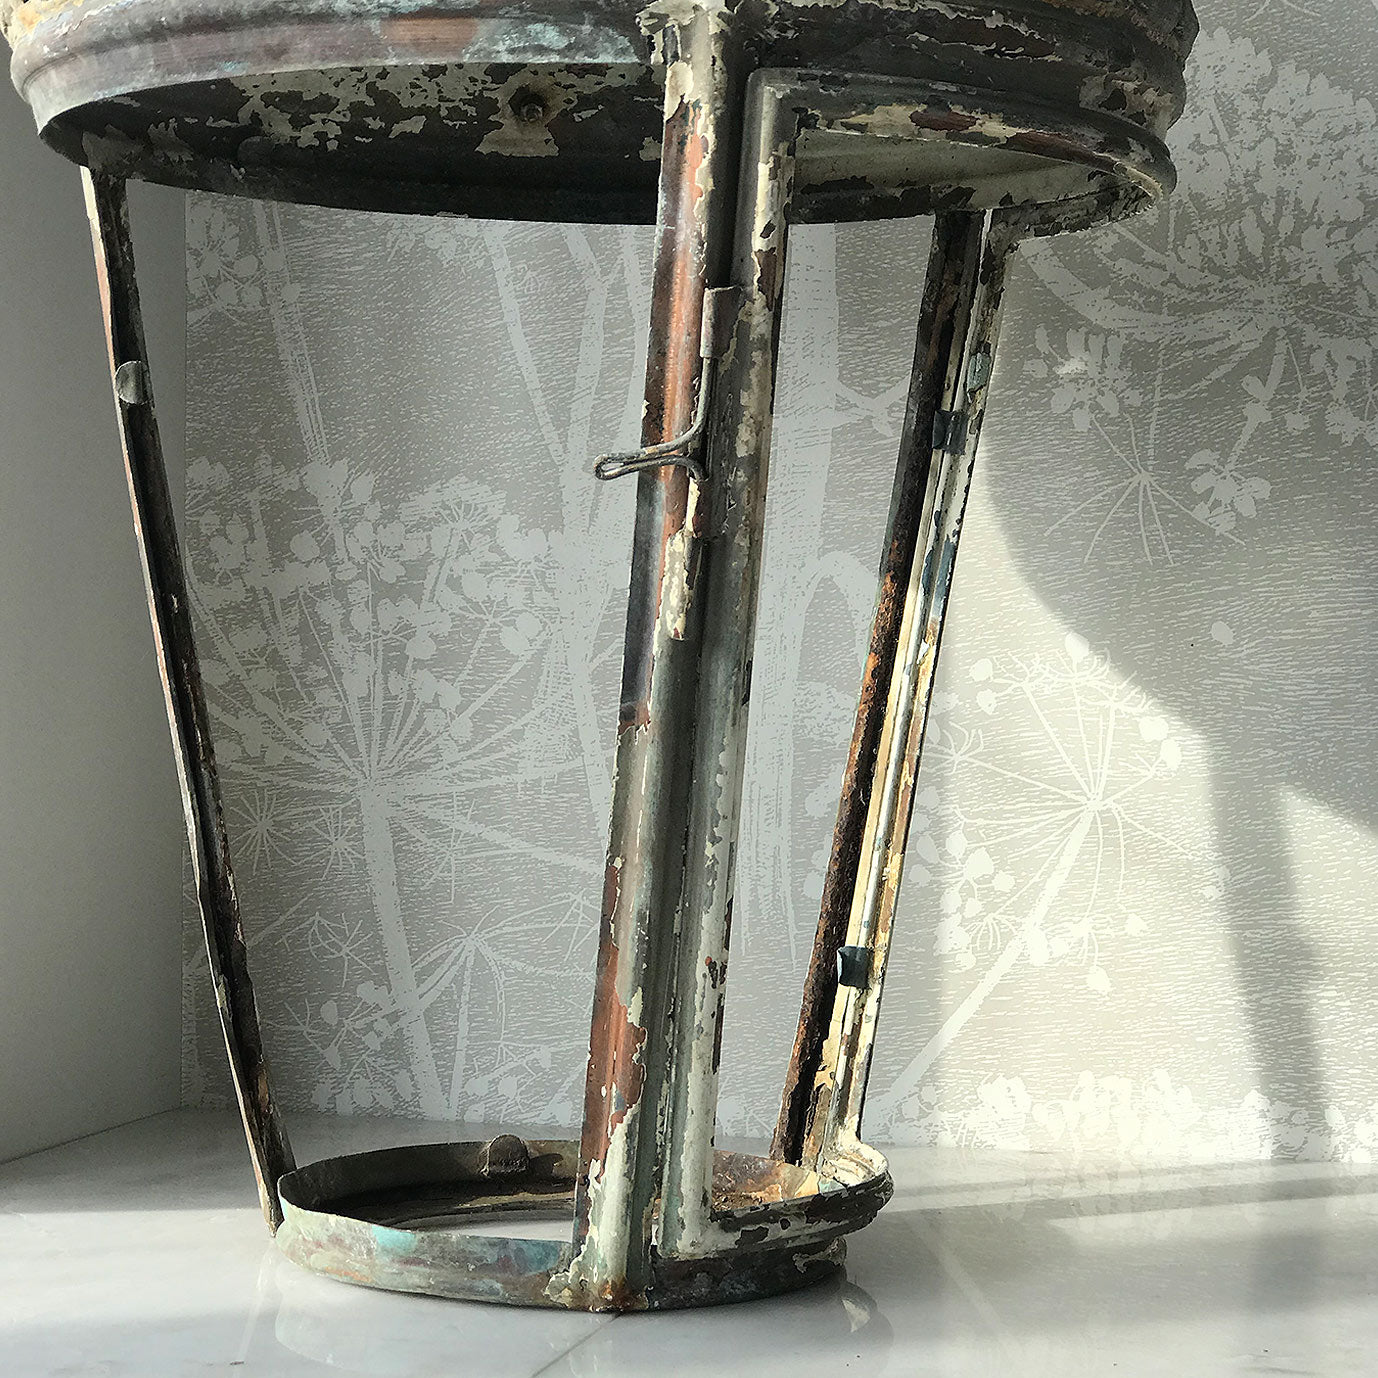 Beautifully distressed large Victorian Antique Copper Lantern. Years of weather have turned this lamp in to a thing of beauty. It stands XX tall with a decorative lead border that has remnants of the gold paint that adorned it. In good structural order having been dismantled, cleaned and re-assembled - SHOP NOW - www.intovintage.co.uk